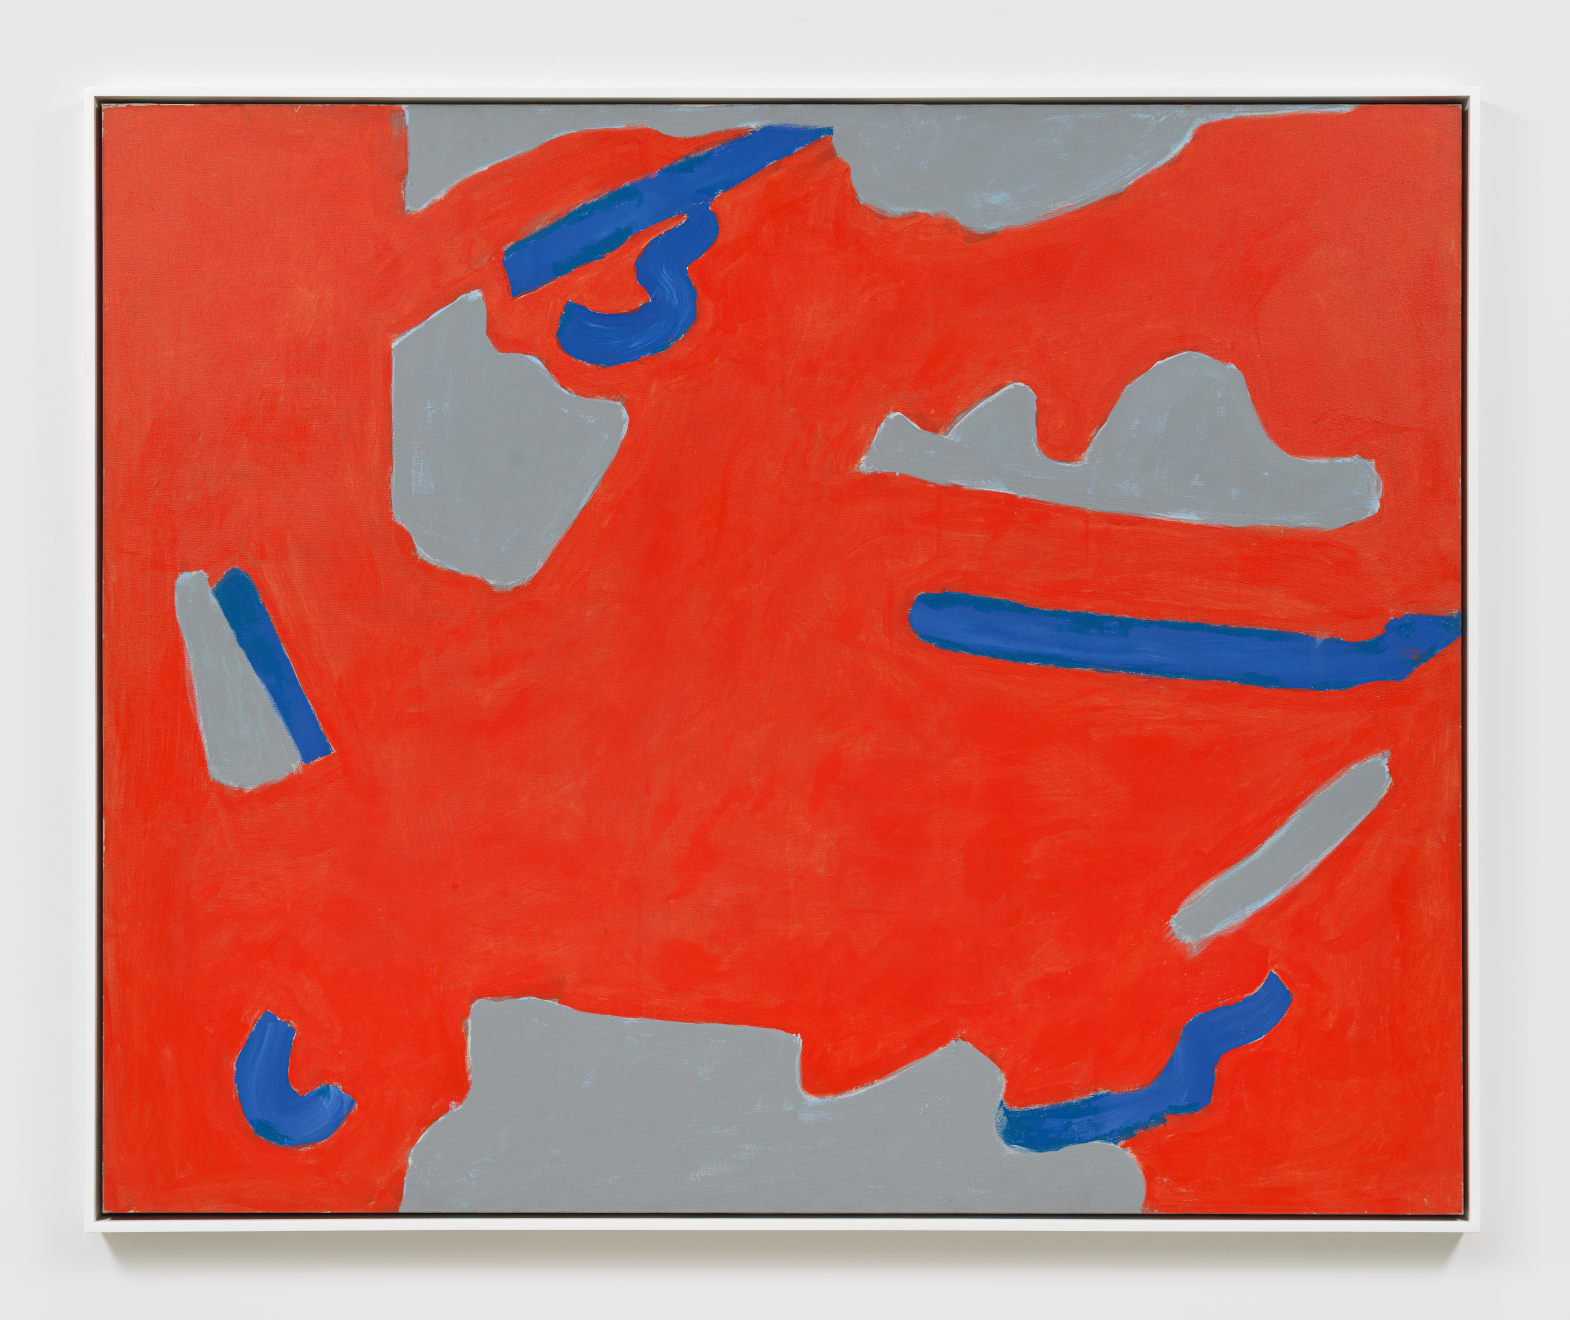 Betty Parsons June 1971, 1971 Acrylic on canvas 53.50h x 65.75w in (135.89h x 167w cm)